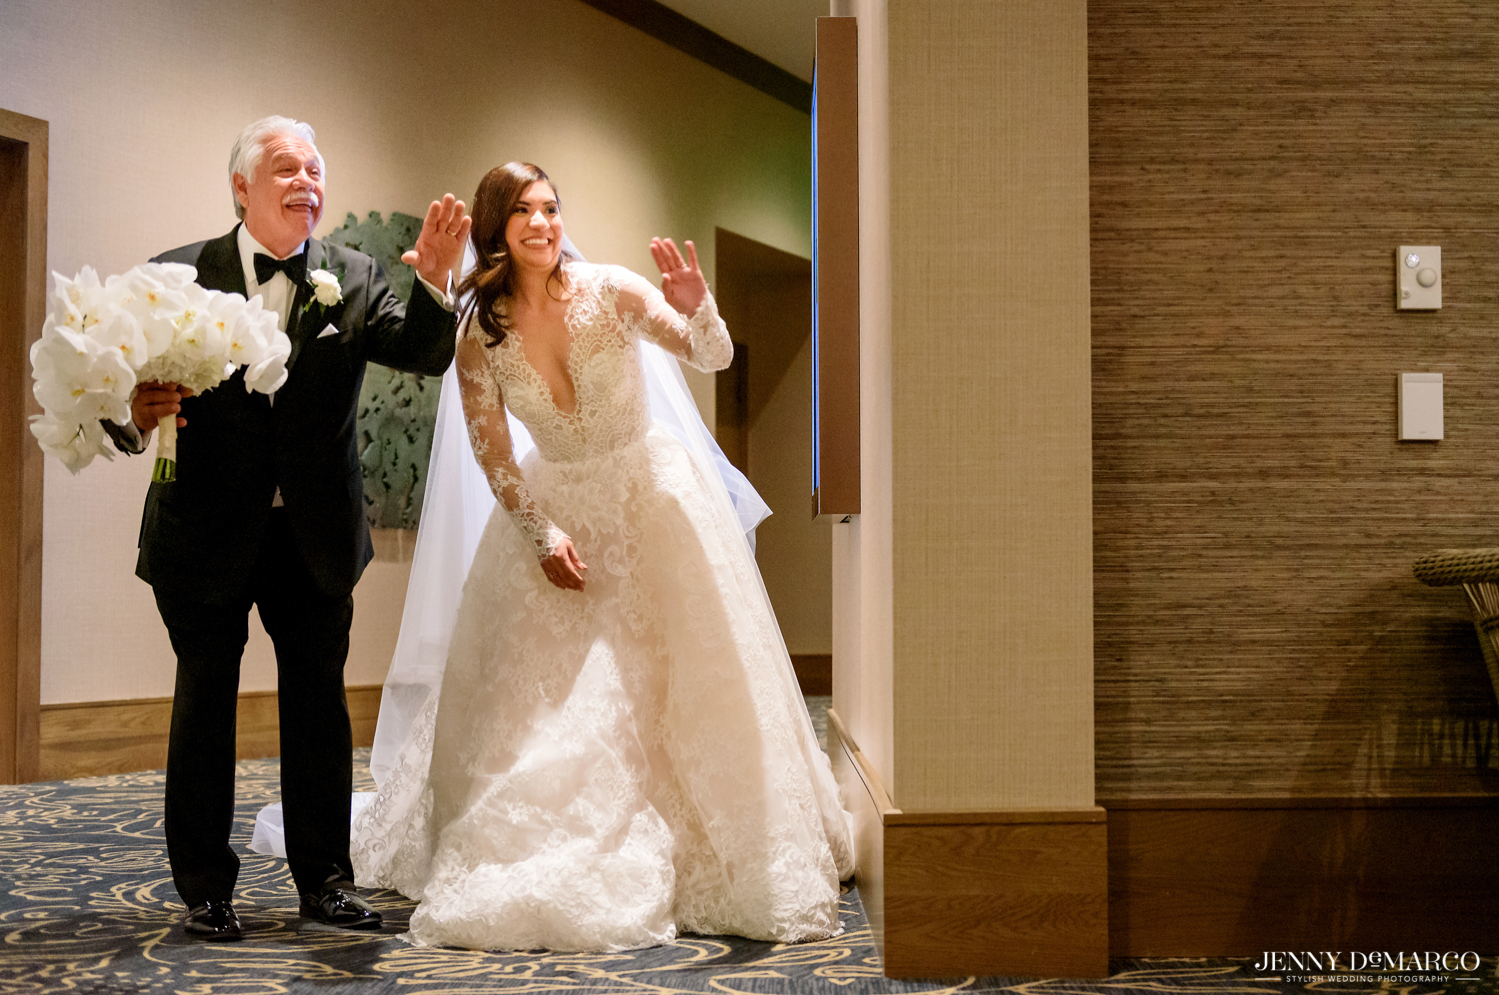 the bride and her dad waving and smiling before walking down the aisle